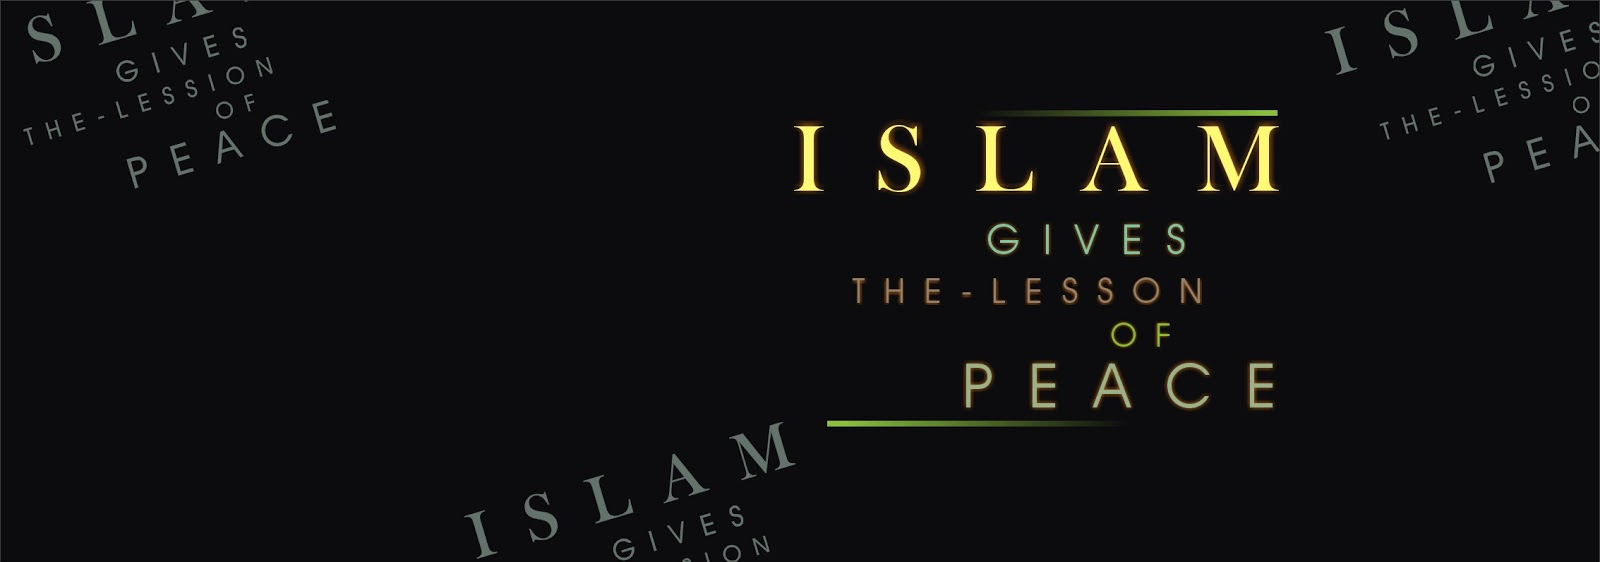 Islam Gives the Lesson of Peace - Timeline Photo